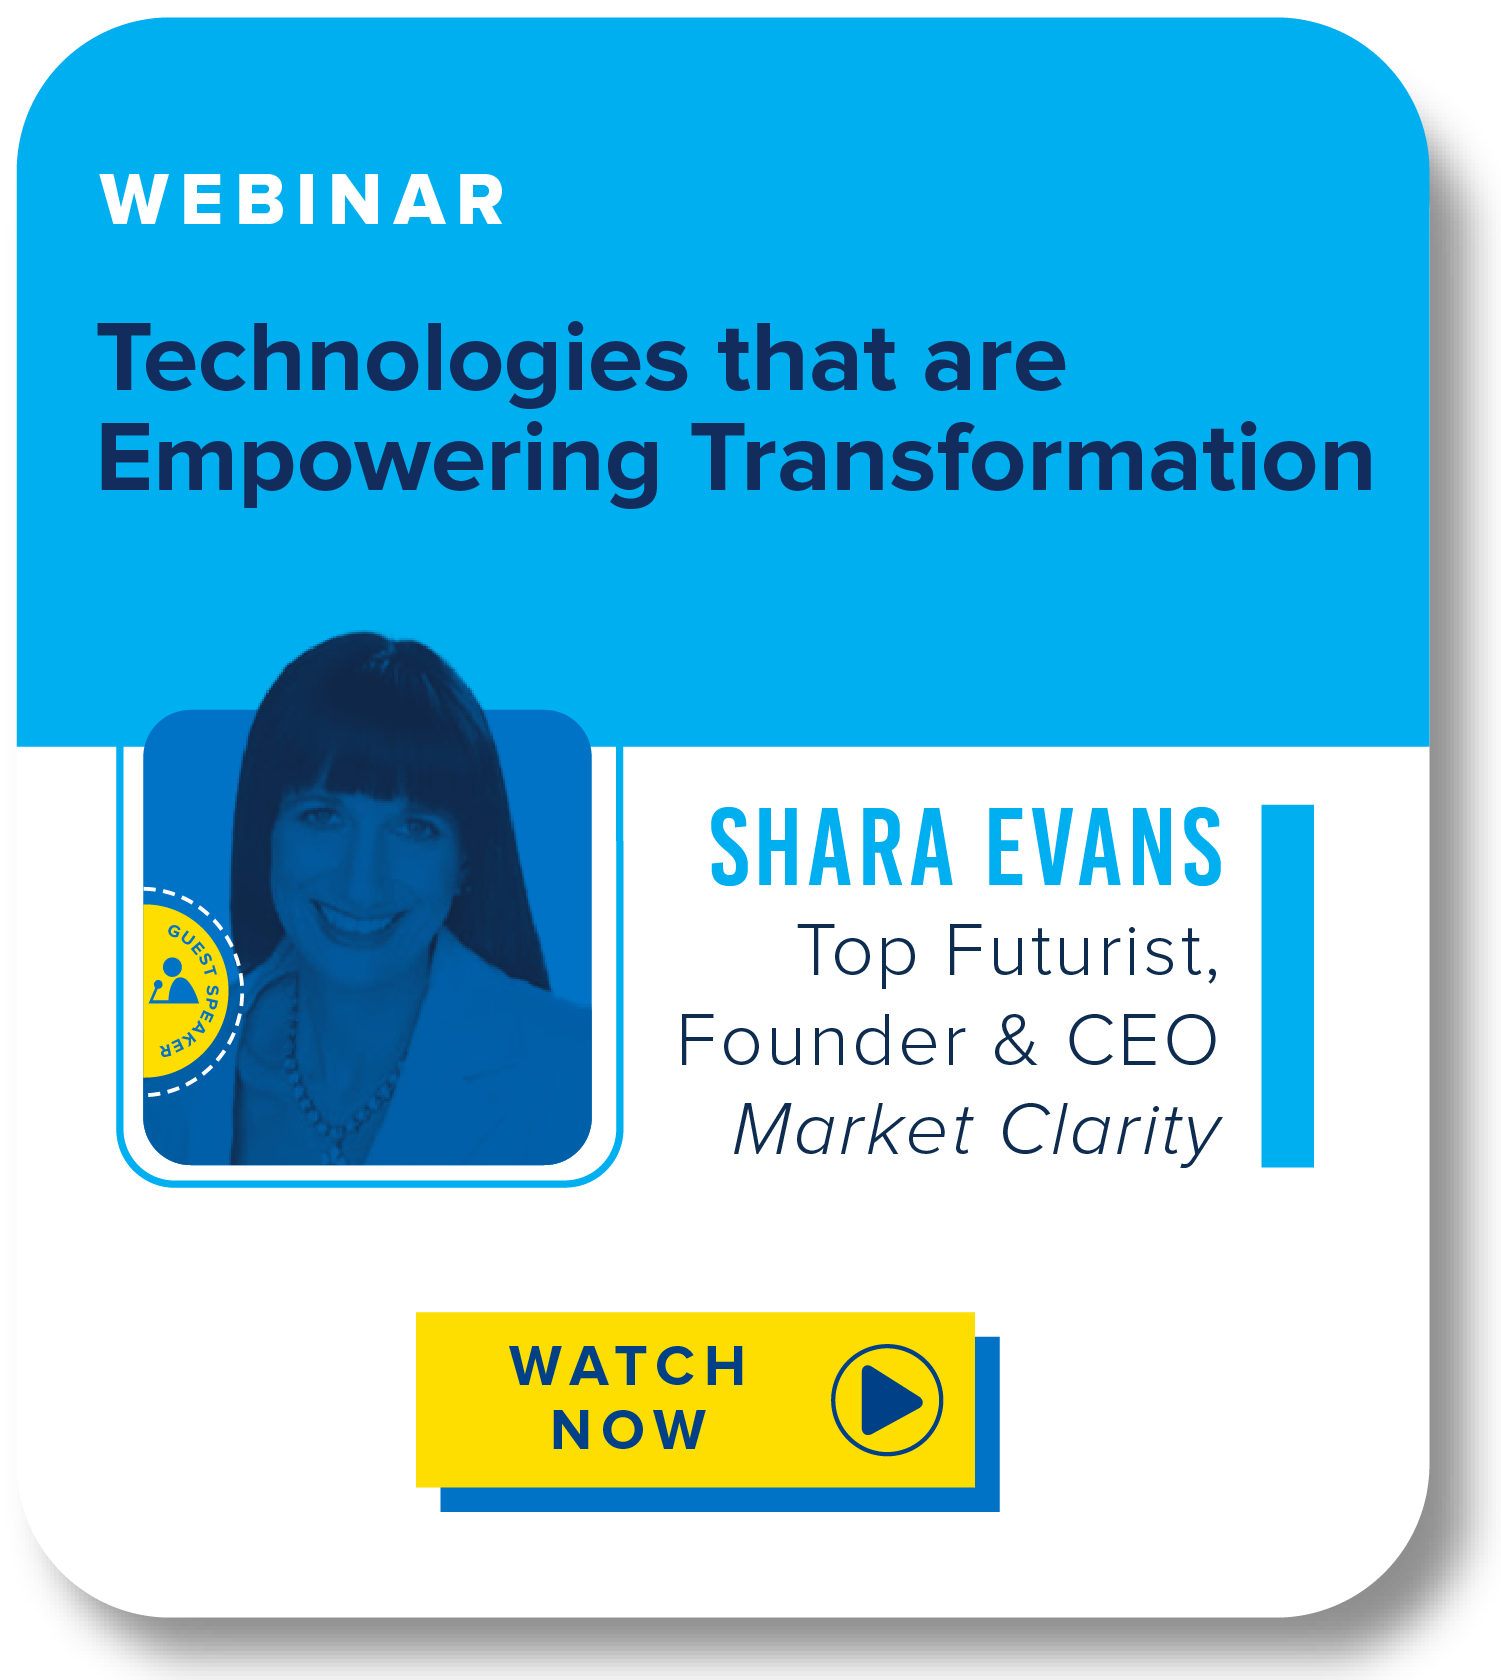 Technologies Empowering Transformation